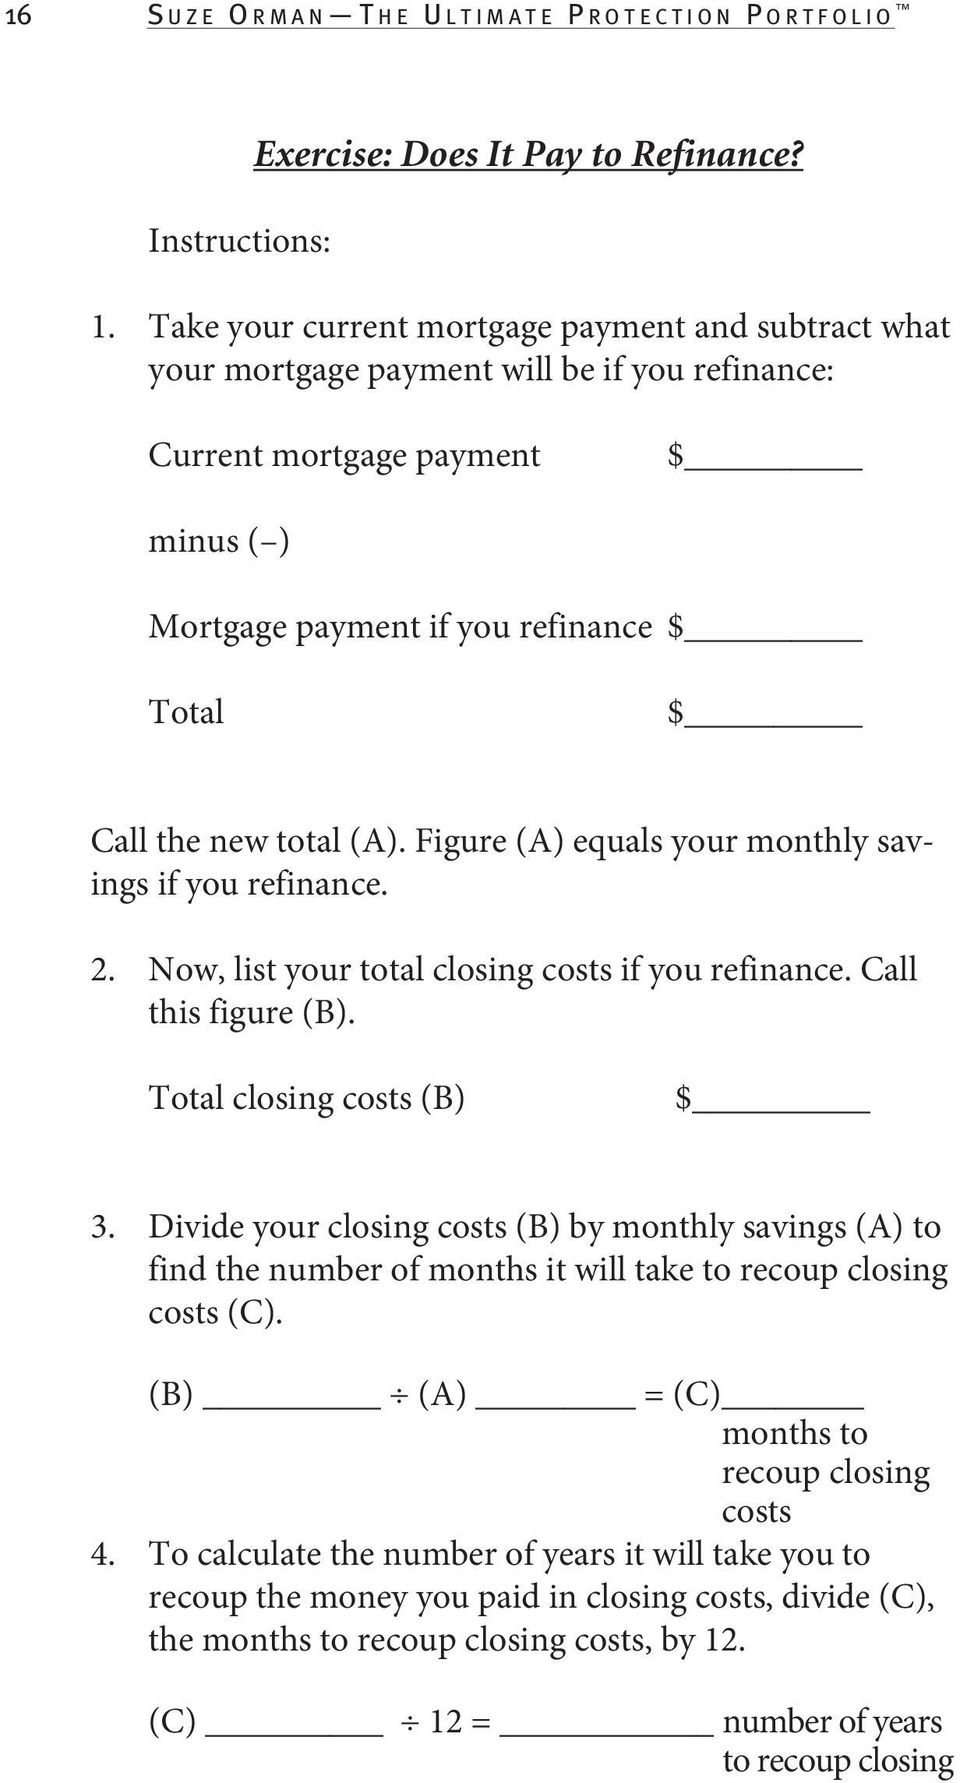 total (A). Figure (A) equals your monthly savings if you refinance. 2. Now, list your total closing costs if you refinance. Call this figure (B). Total closing costs (B) $ 3.